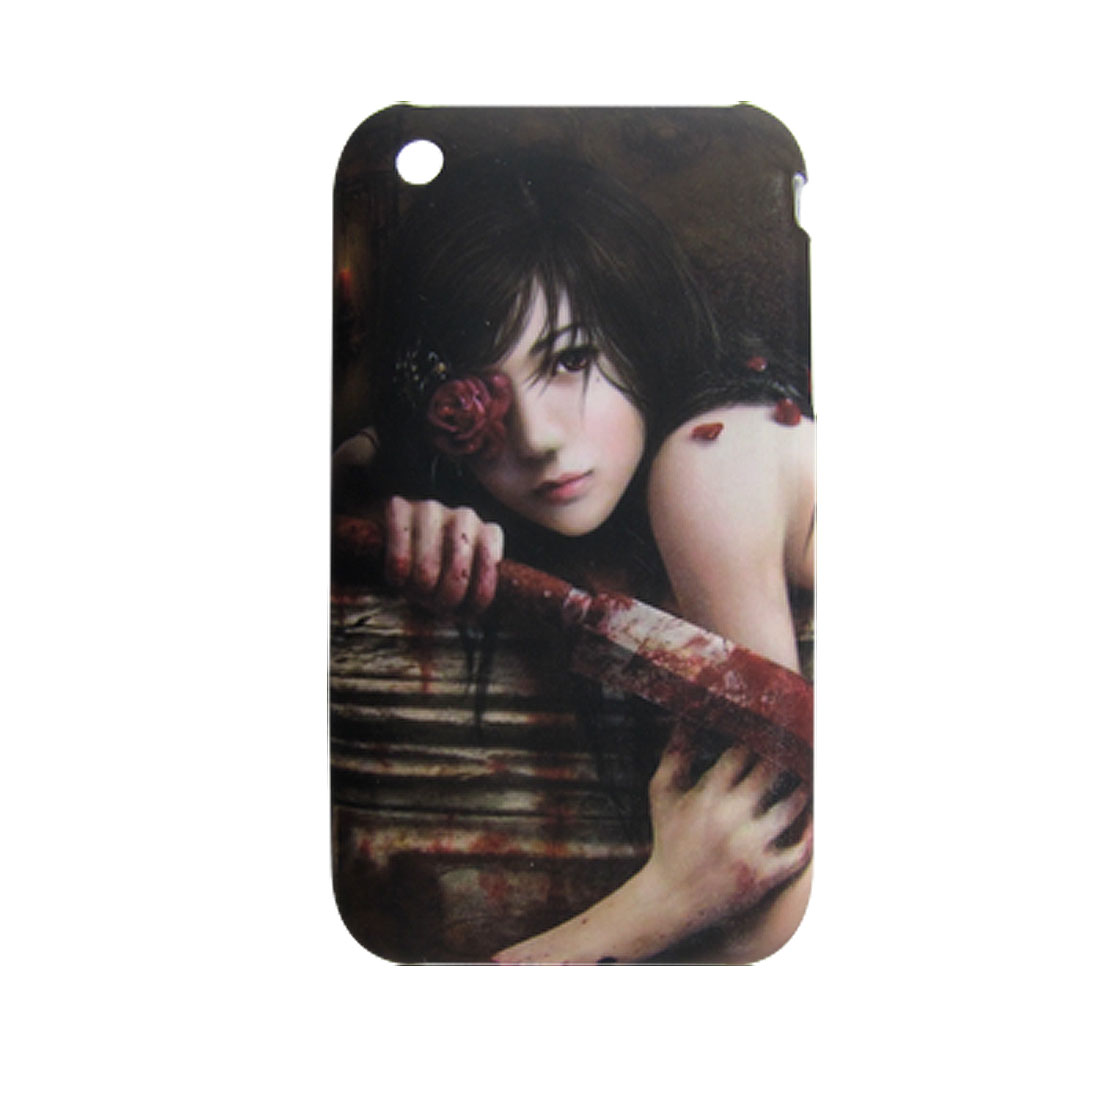 Dreamy Lady Print Rubberized Plastic Back Case for iPhone 3G